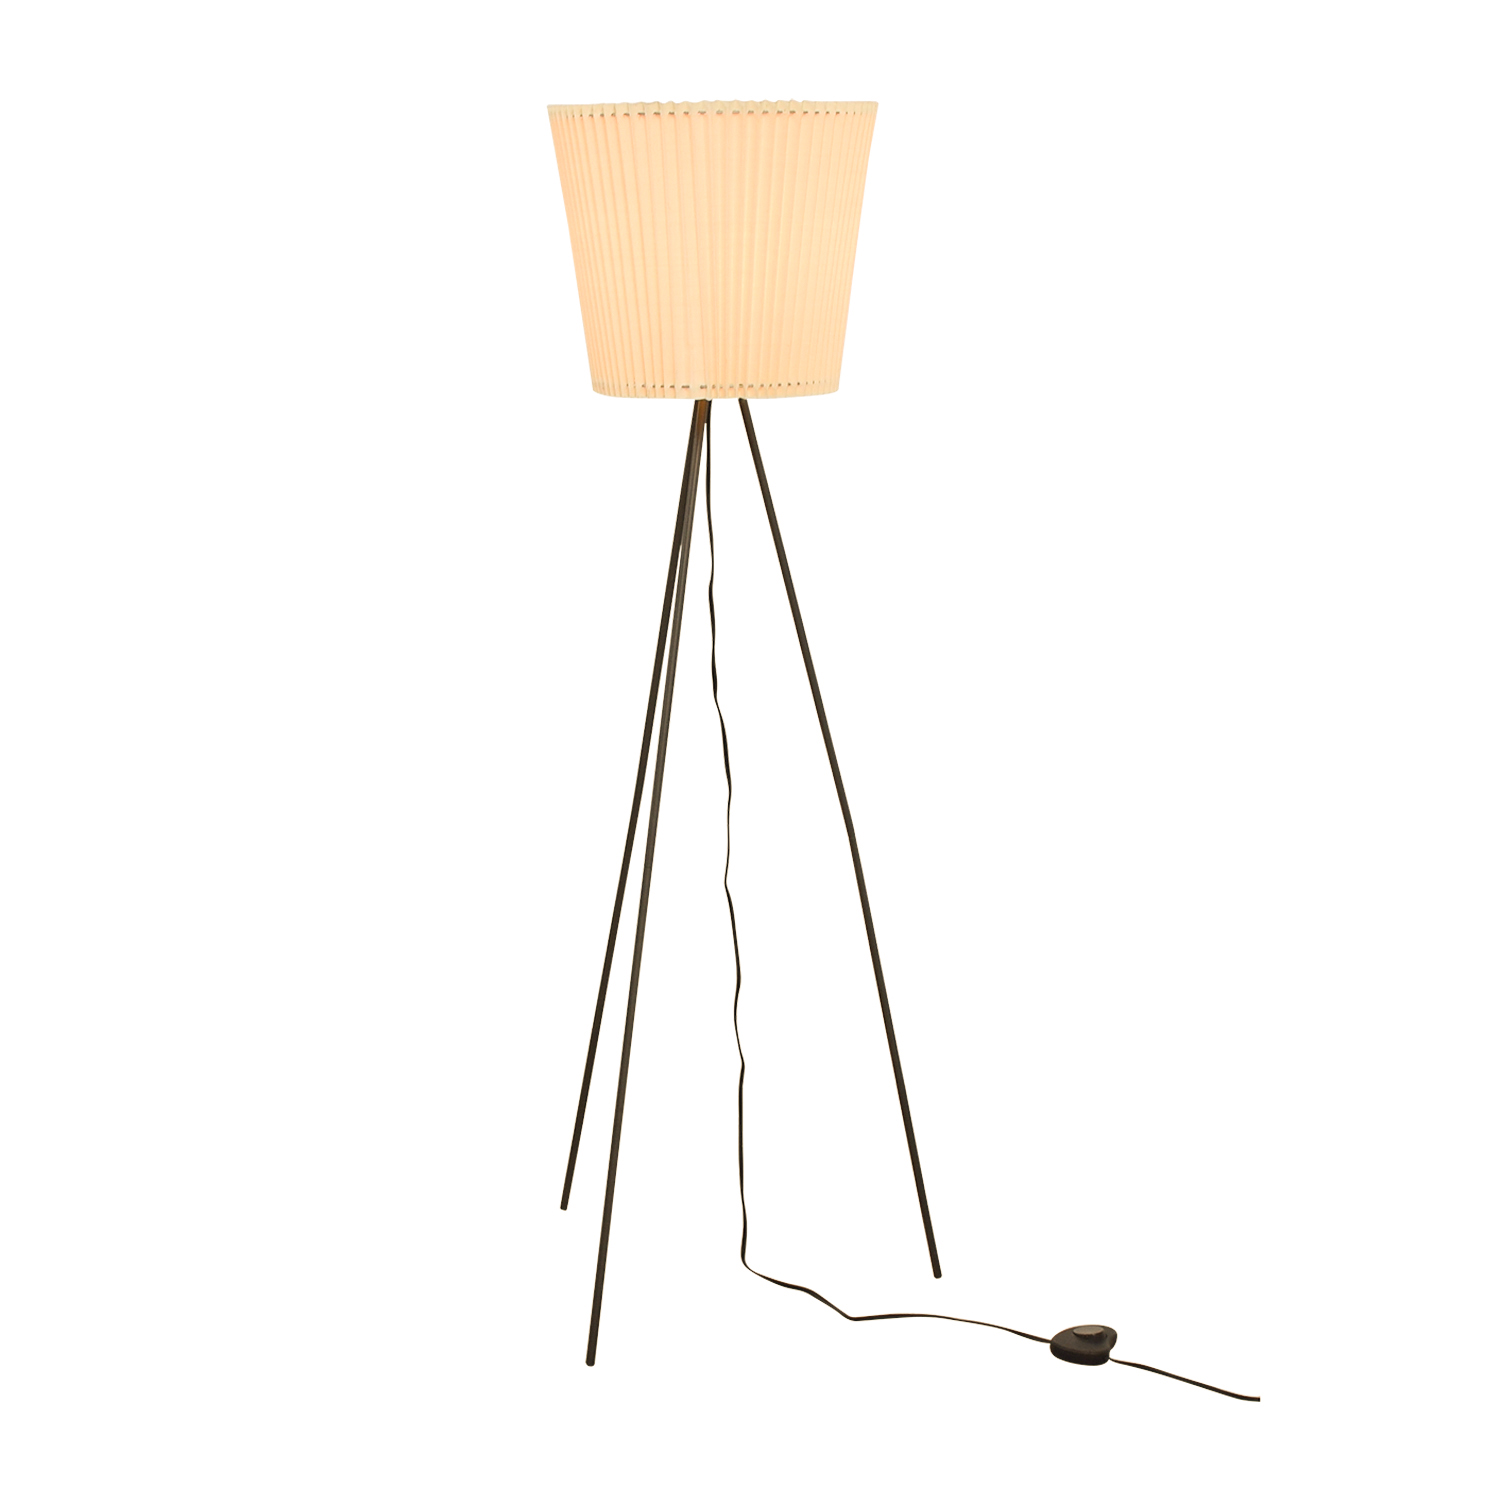 76 off pottery barn pottery barn tripod floor lamp with accordion pottery barn pottery barn tripod floor lamp with accordion shade second hand aloadofball Image collections